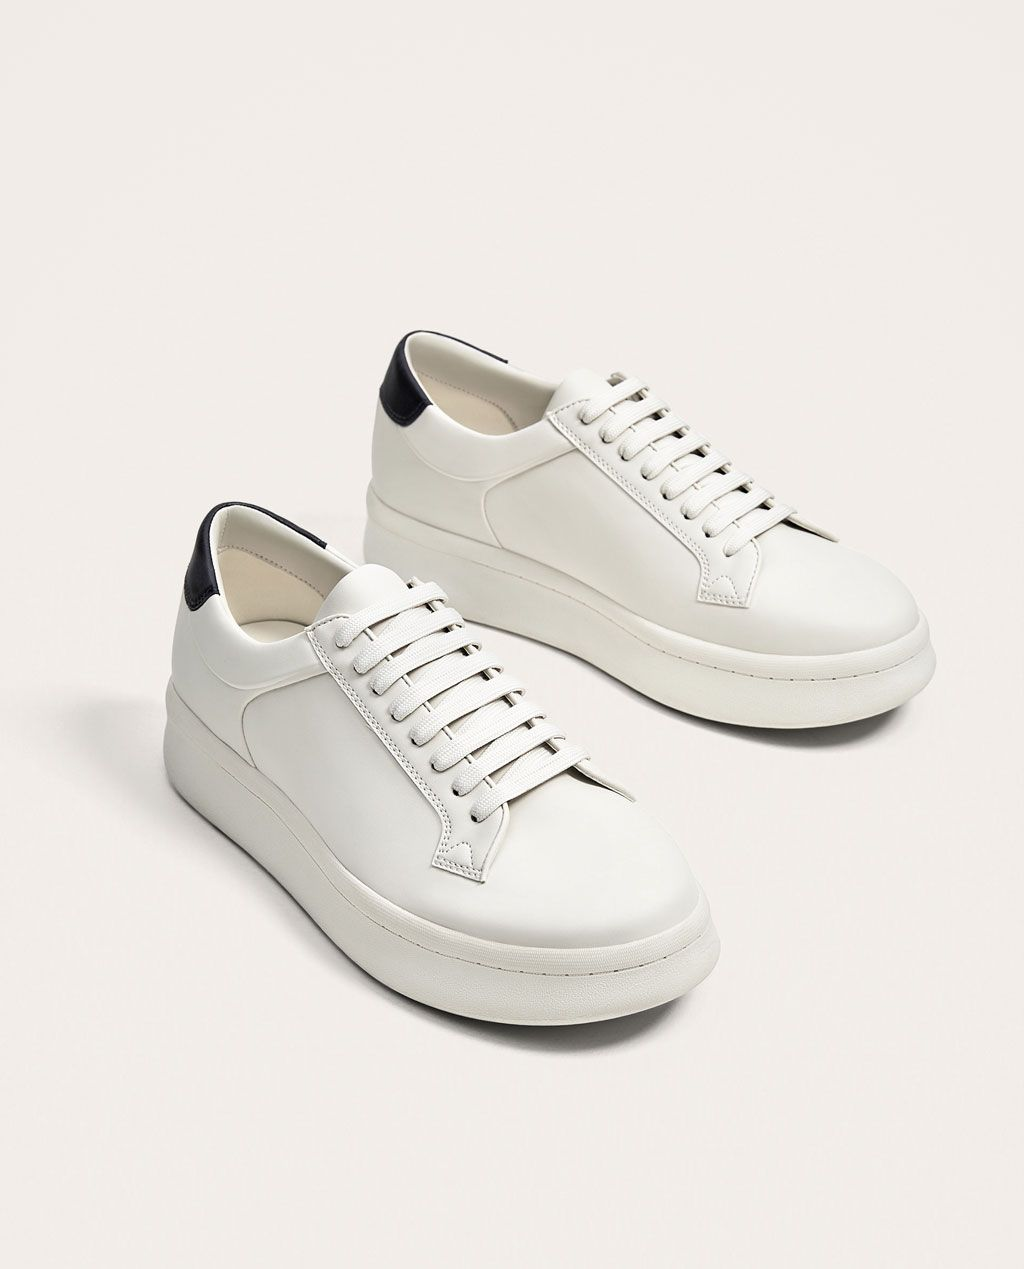 e61417e59e5d Image 1 of CLASSIC WHITE PLATFORM SNEAKERS from Zara. Find this Pin and  more on MENS SHOES ...